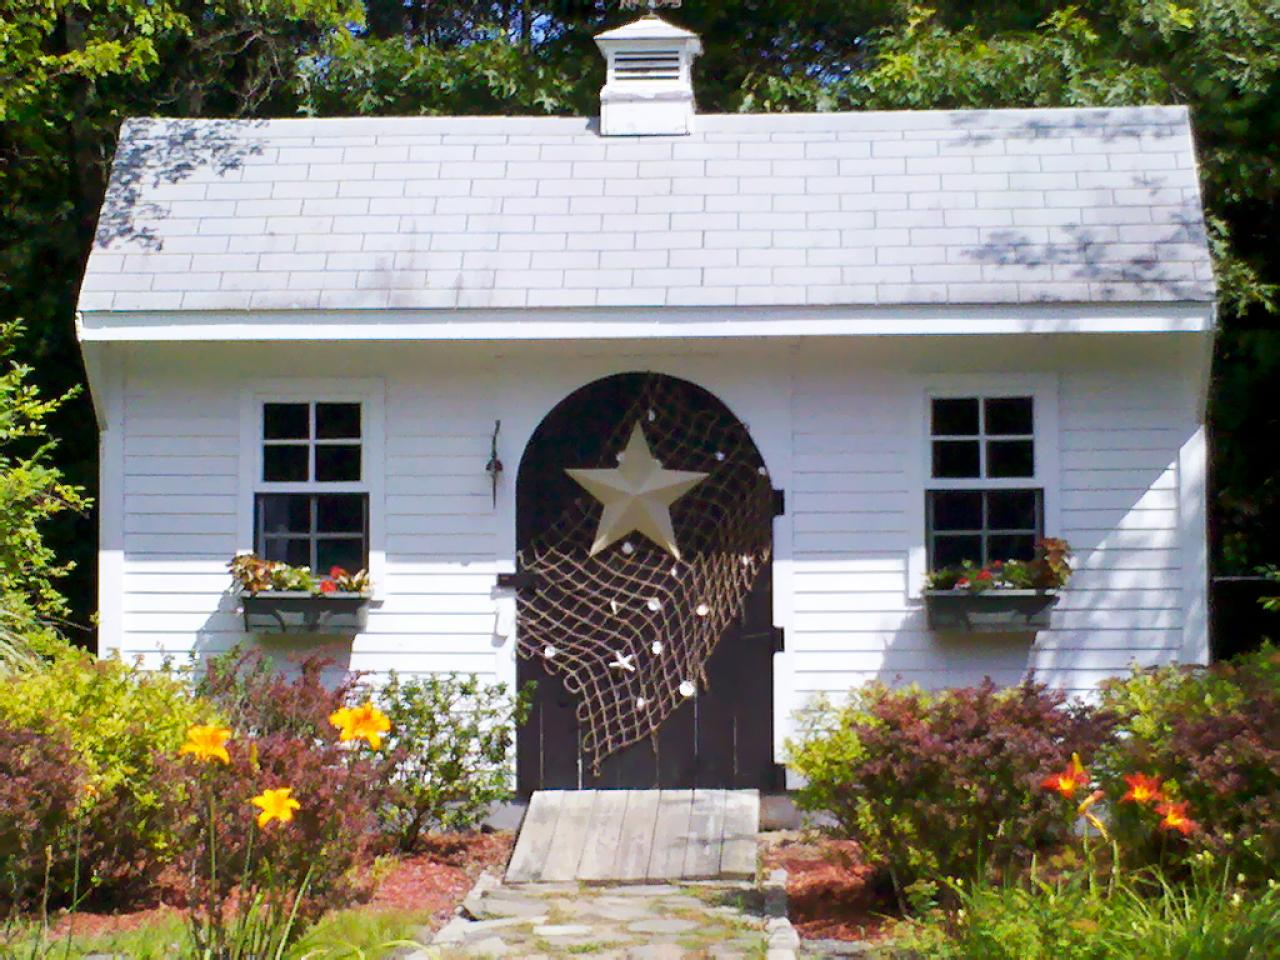 Small white summer house with fishing net, shells and star fish on the front door